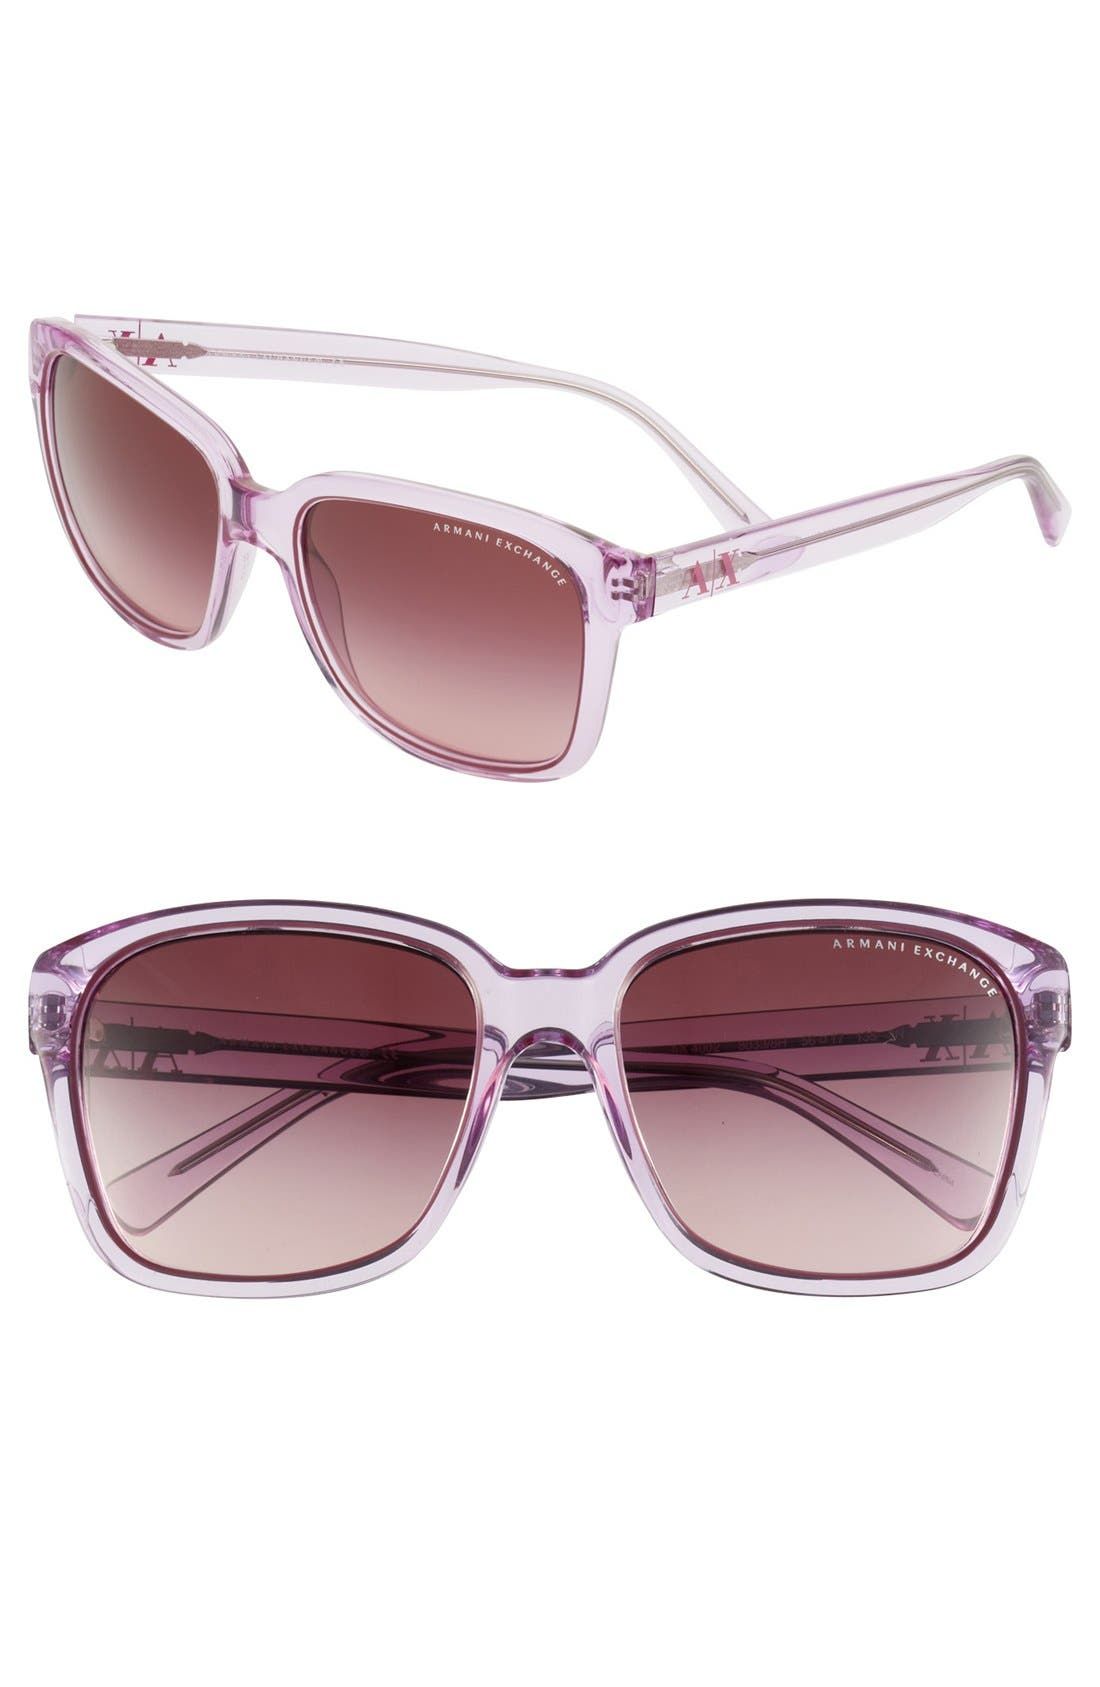 Alternate Image 1 Selected - AX Armani Exchange 56mm Sunglasses